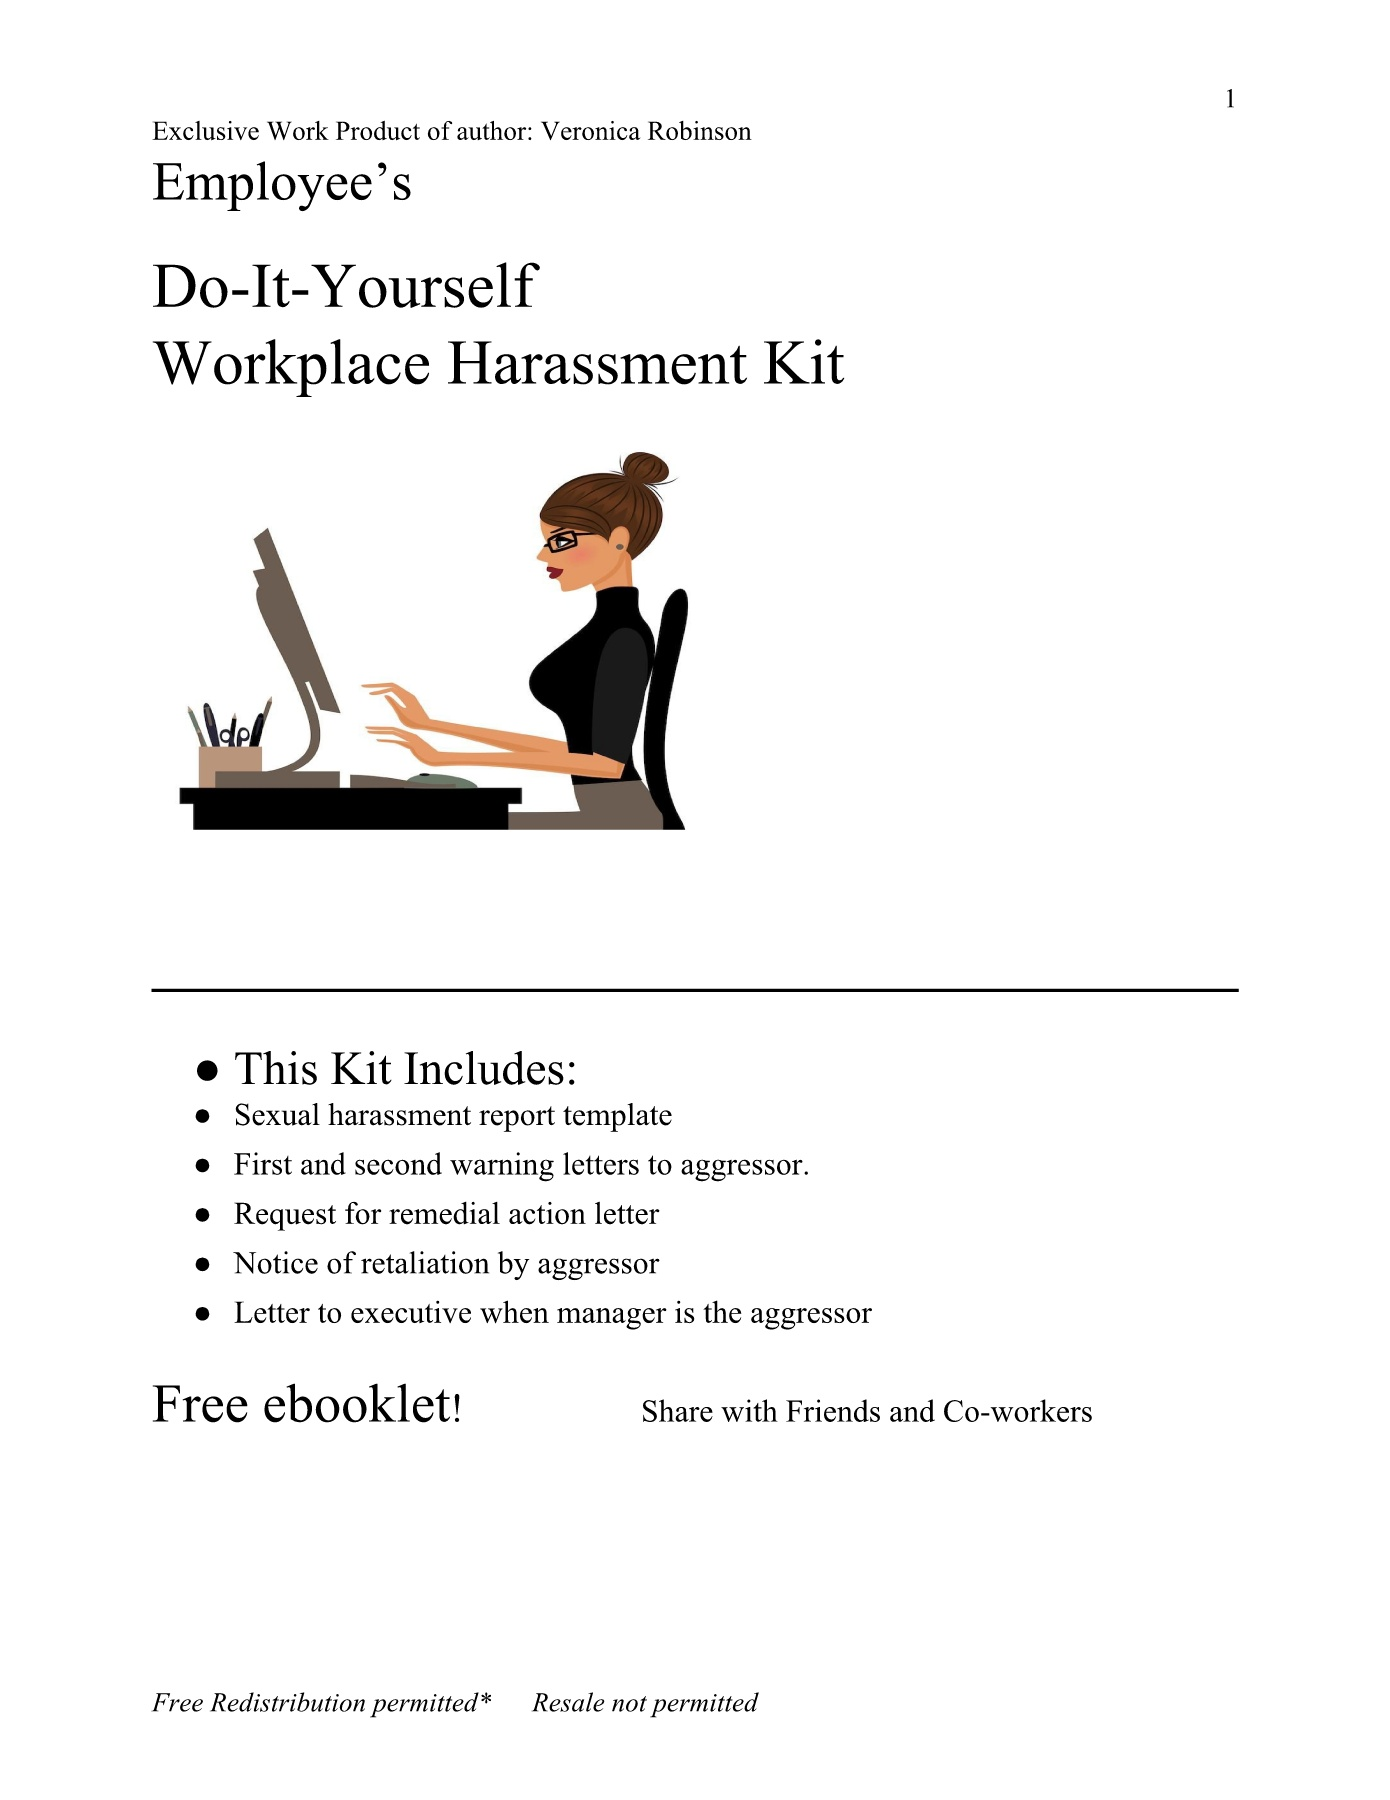 Employees Warning Letter  Sexual Harassment Toolkit Pages 1 - 12